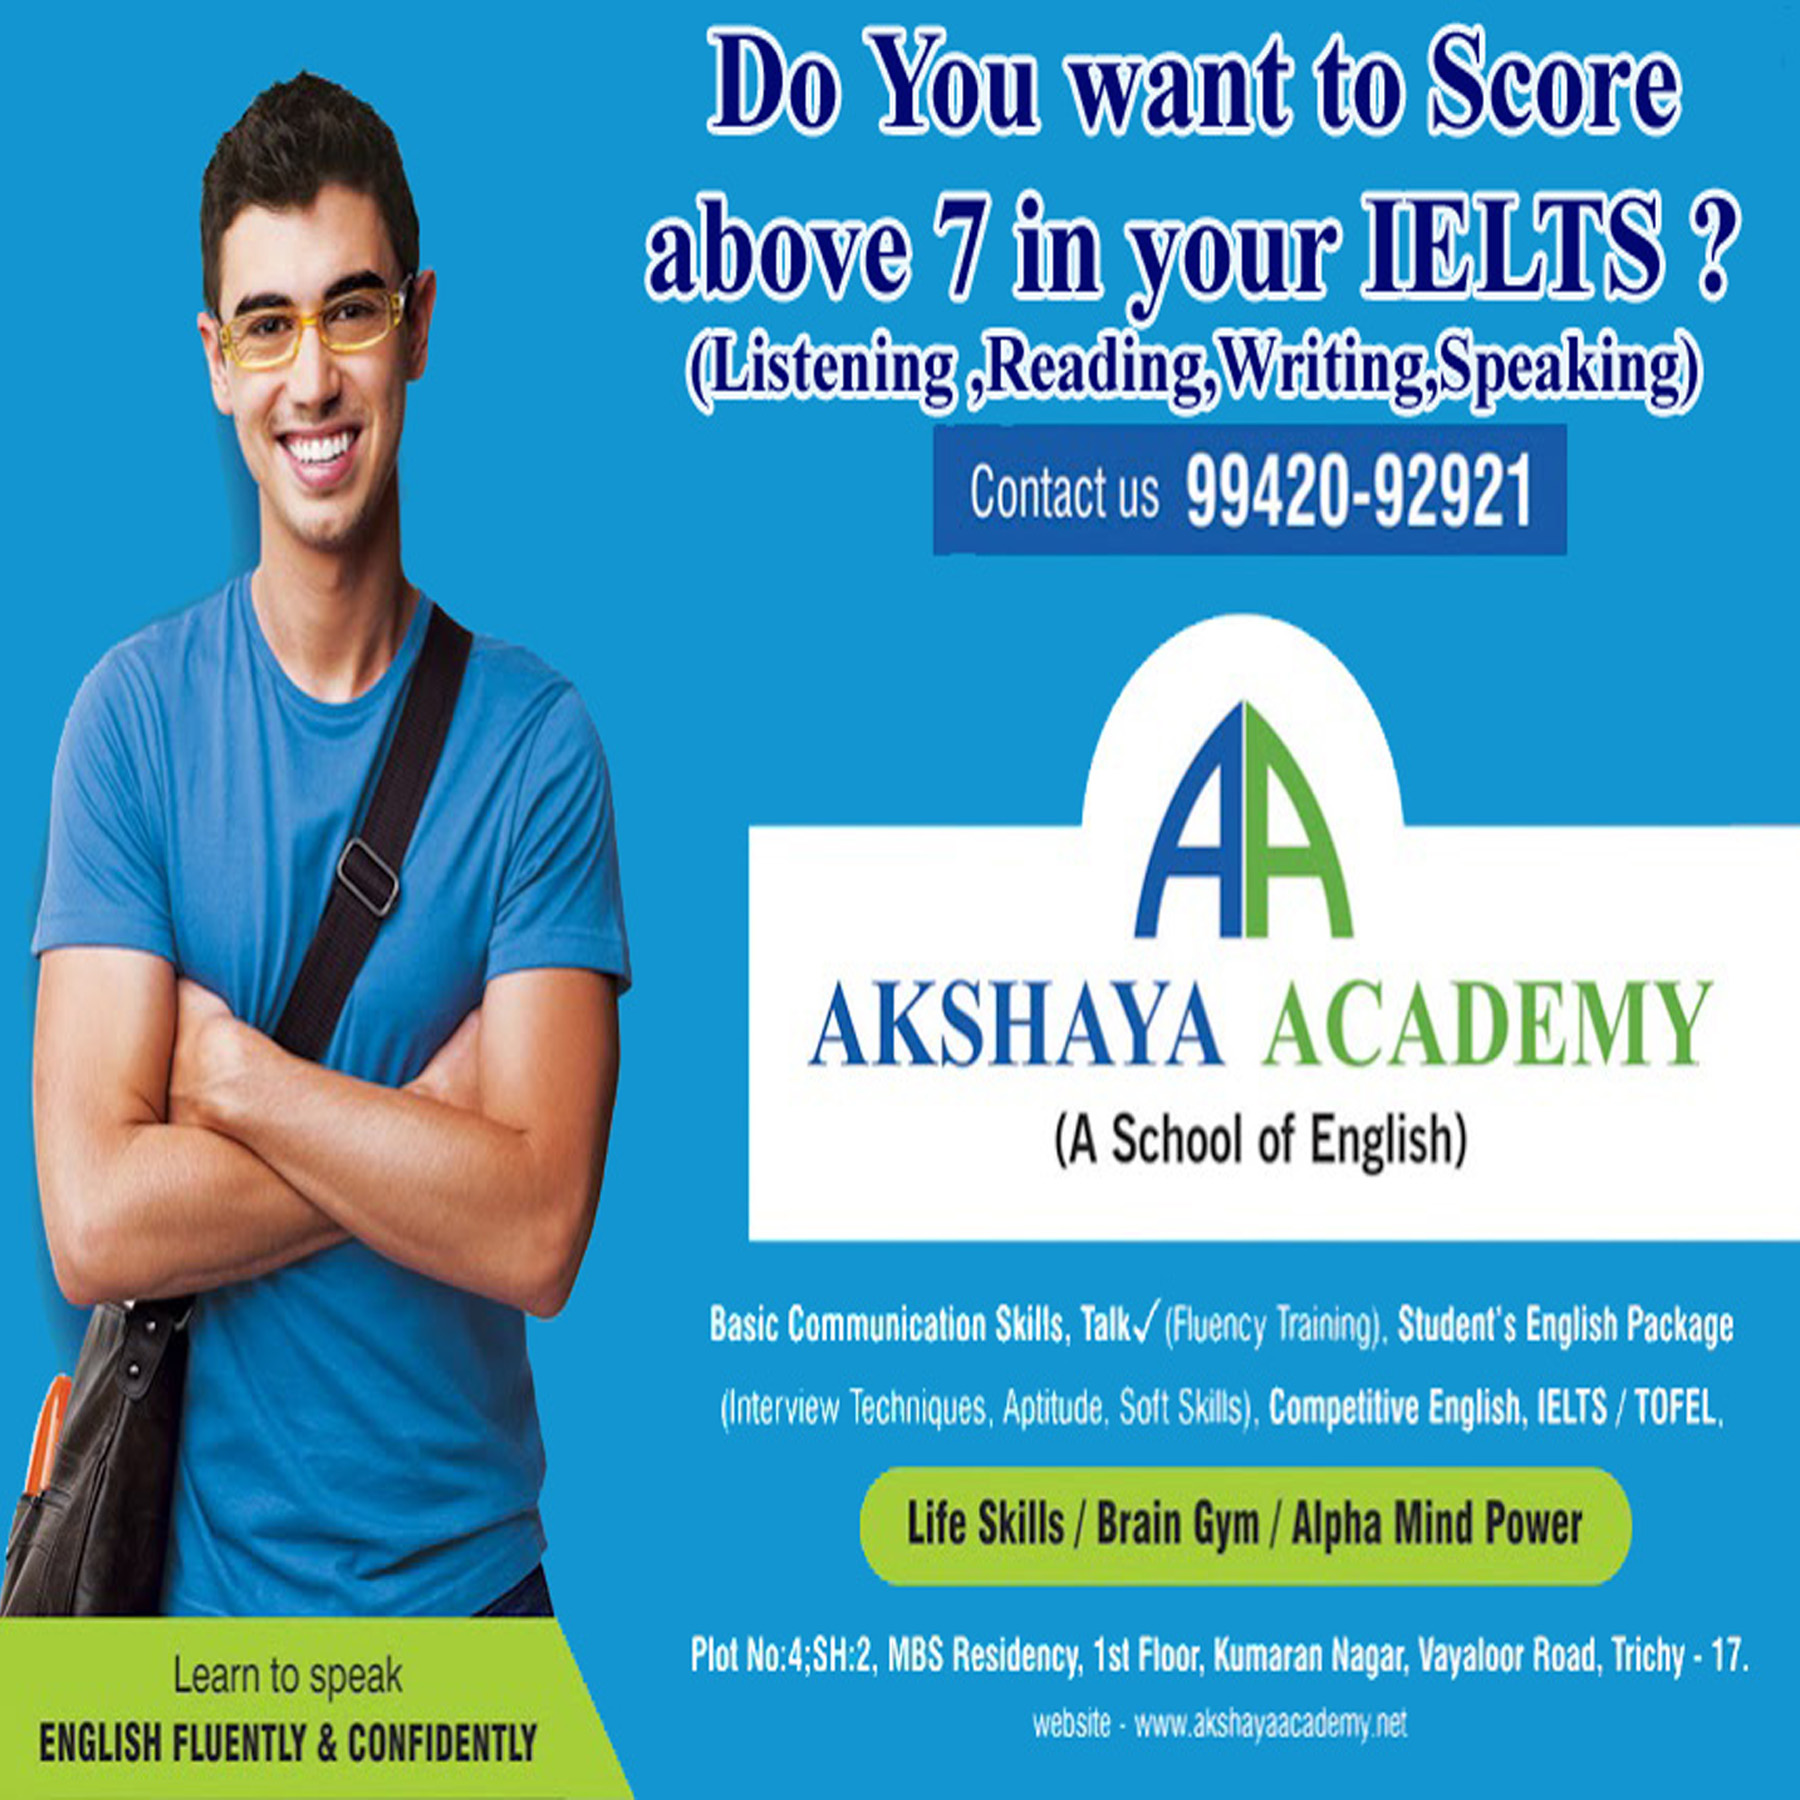 Image for IELTS CLASS IN TRICHY | IELTS COACHING CENTER IN TRICHY